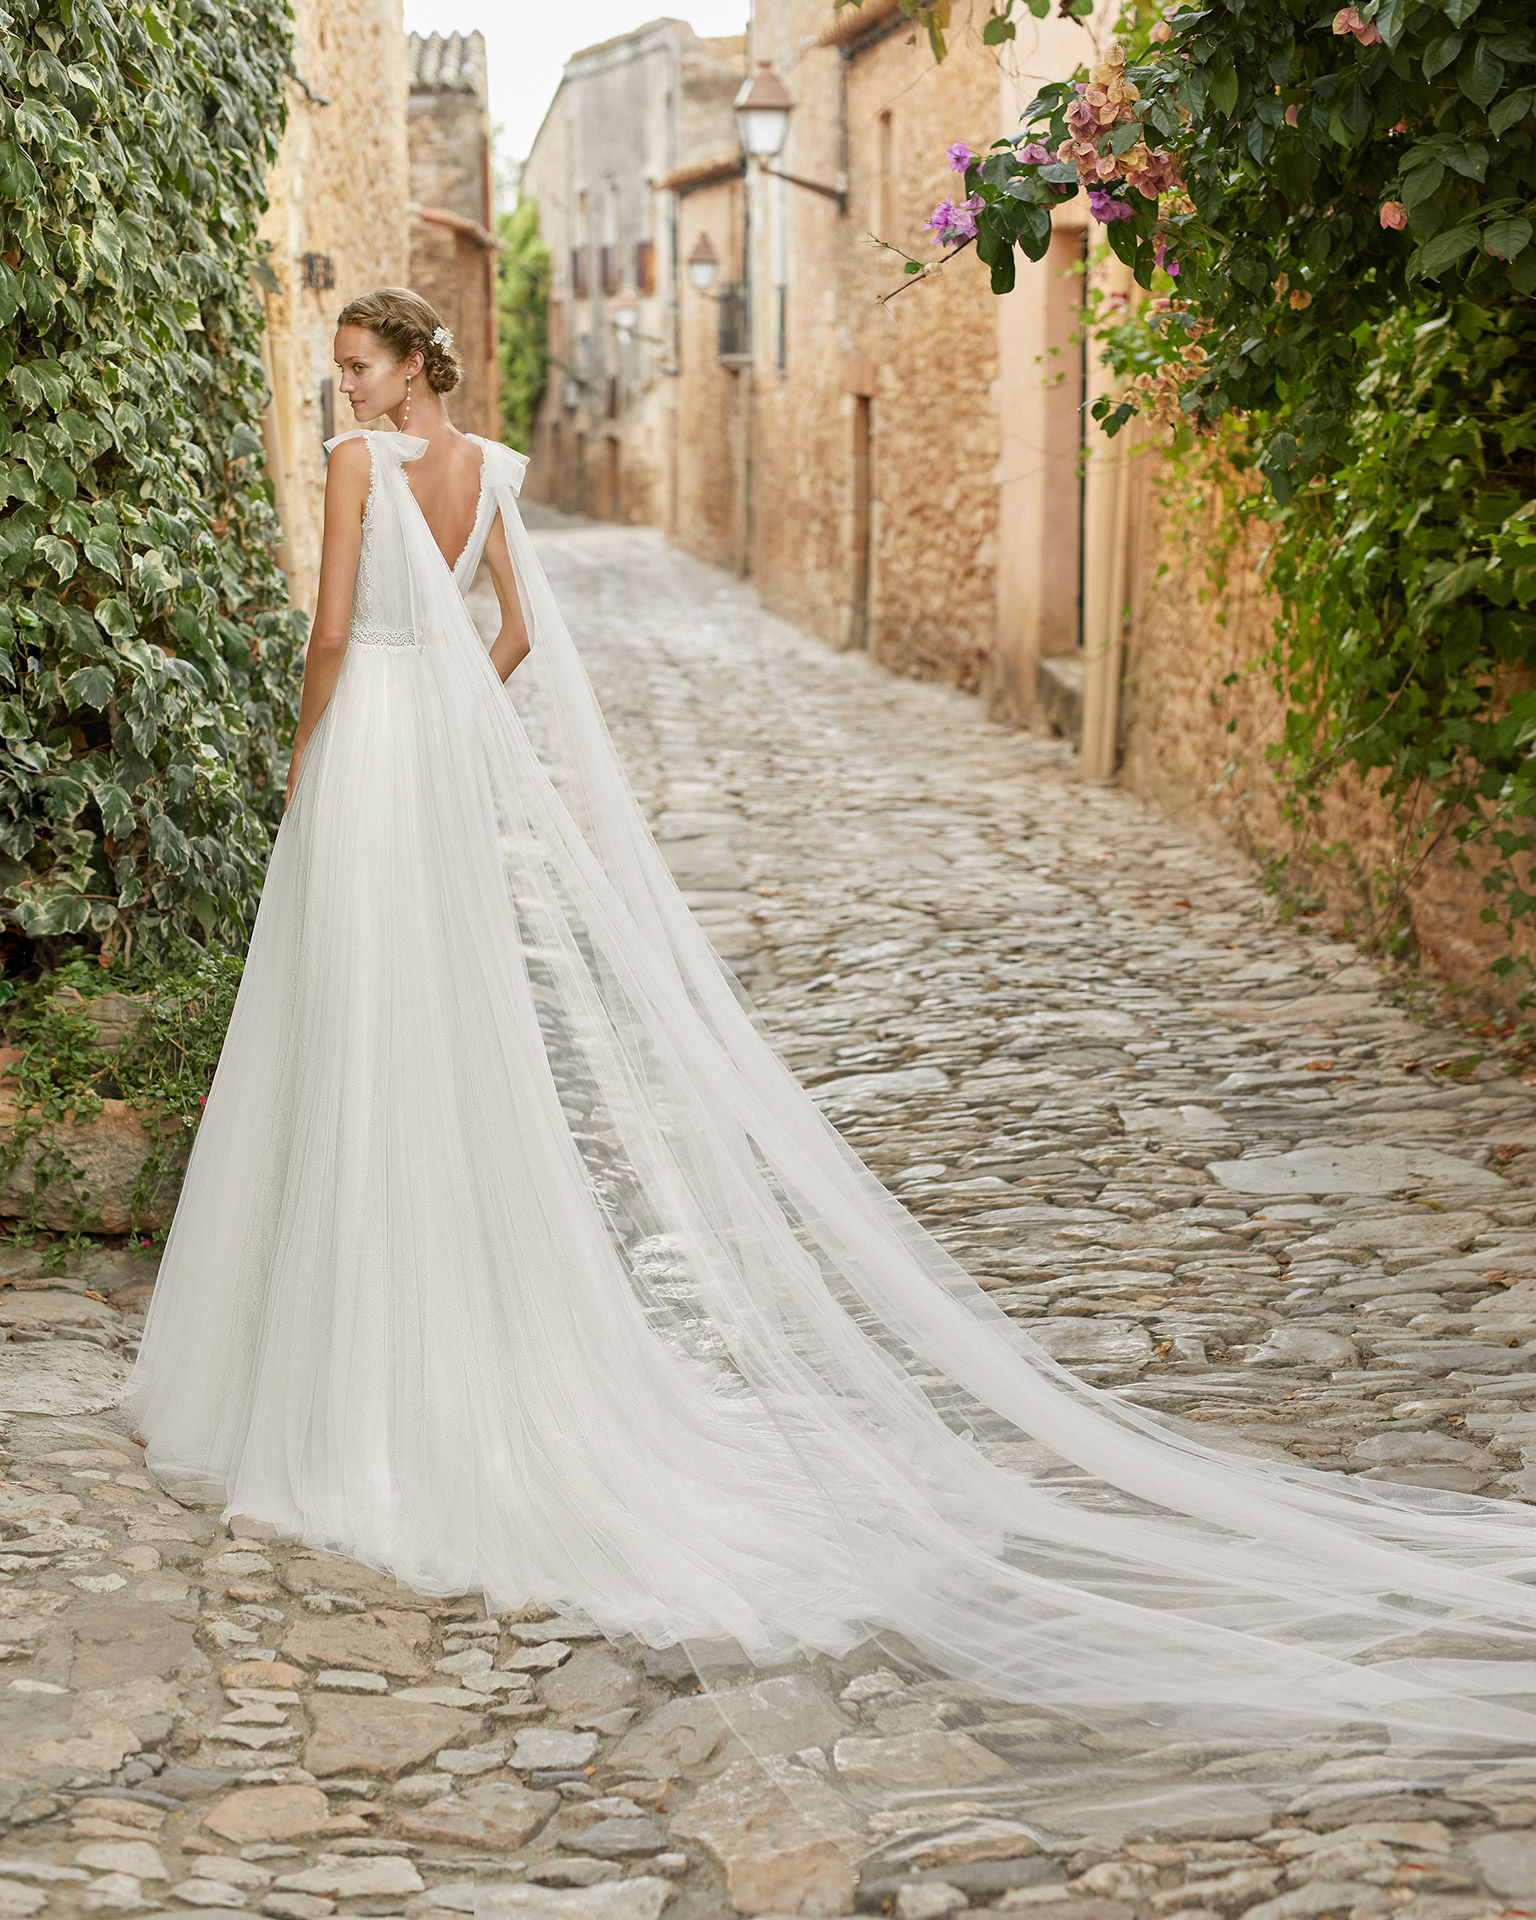 Romantic lightweight ballgown-style wedding dress and long draped tulle; V-neckline, open back and pleated tulle bodice. Alma Novia model in tulle. 2022 ALMANOVIA Collection.